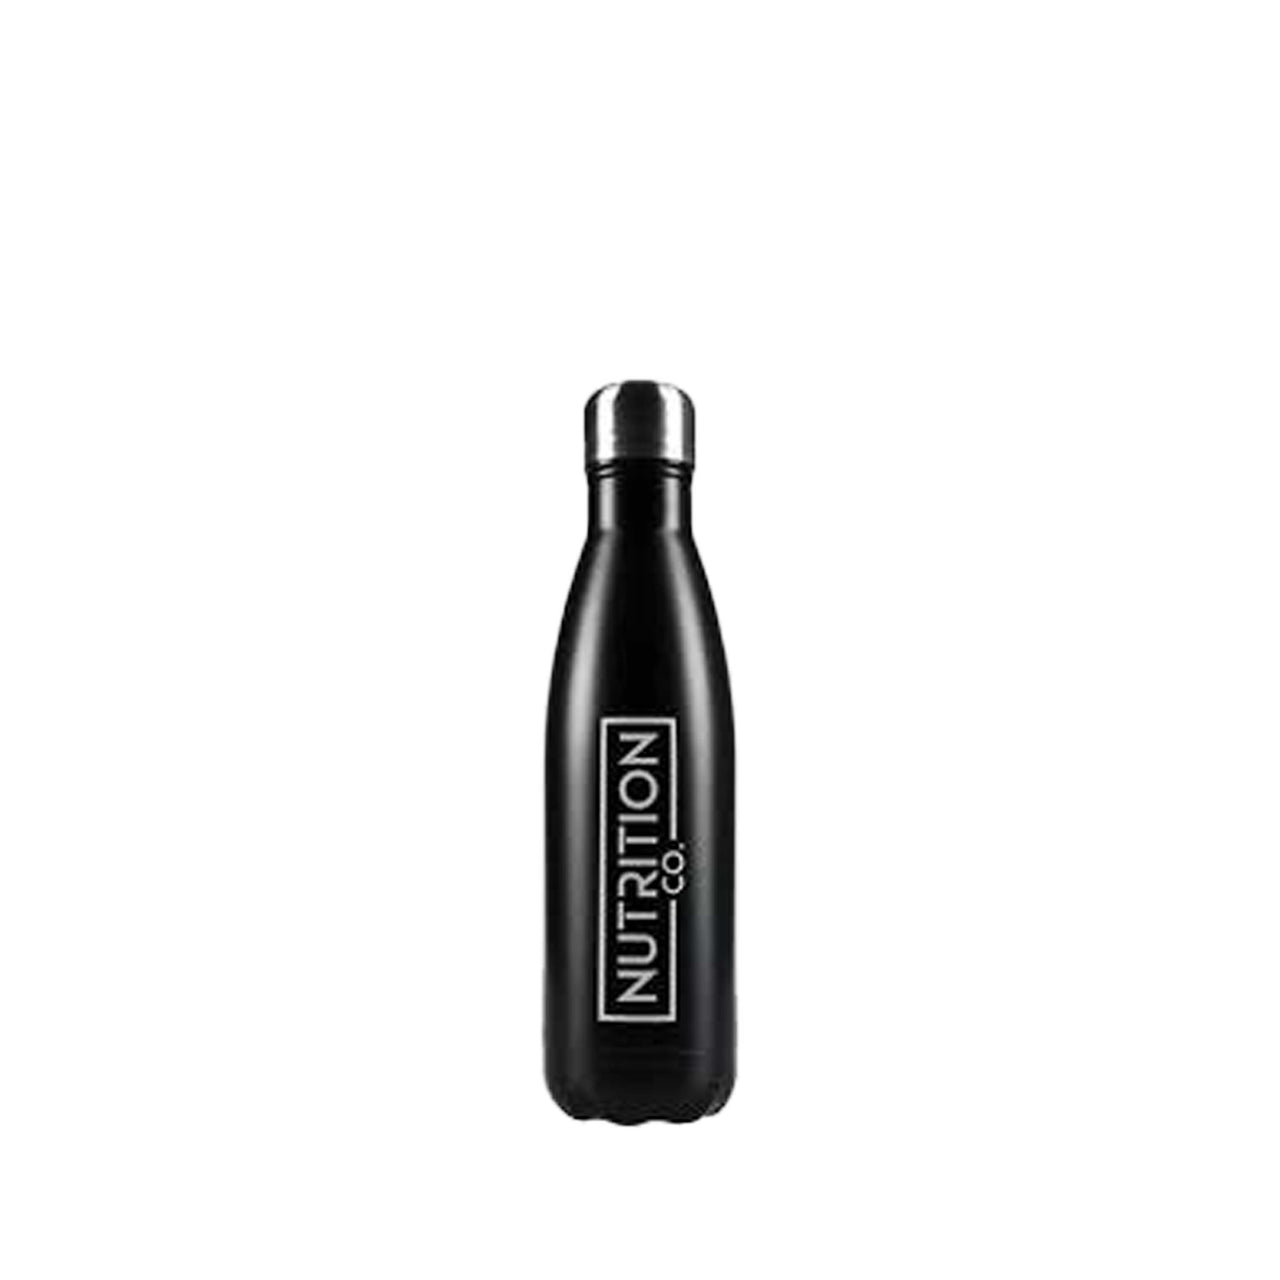 Nutrition Co Stainless Waterbottles - Nutrition Co Australia